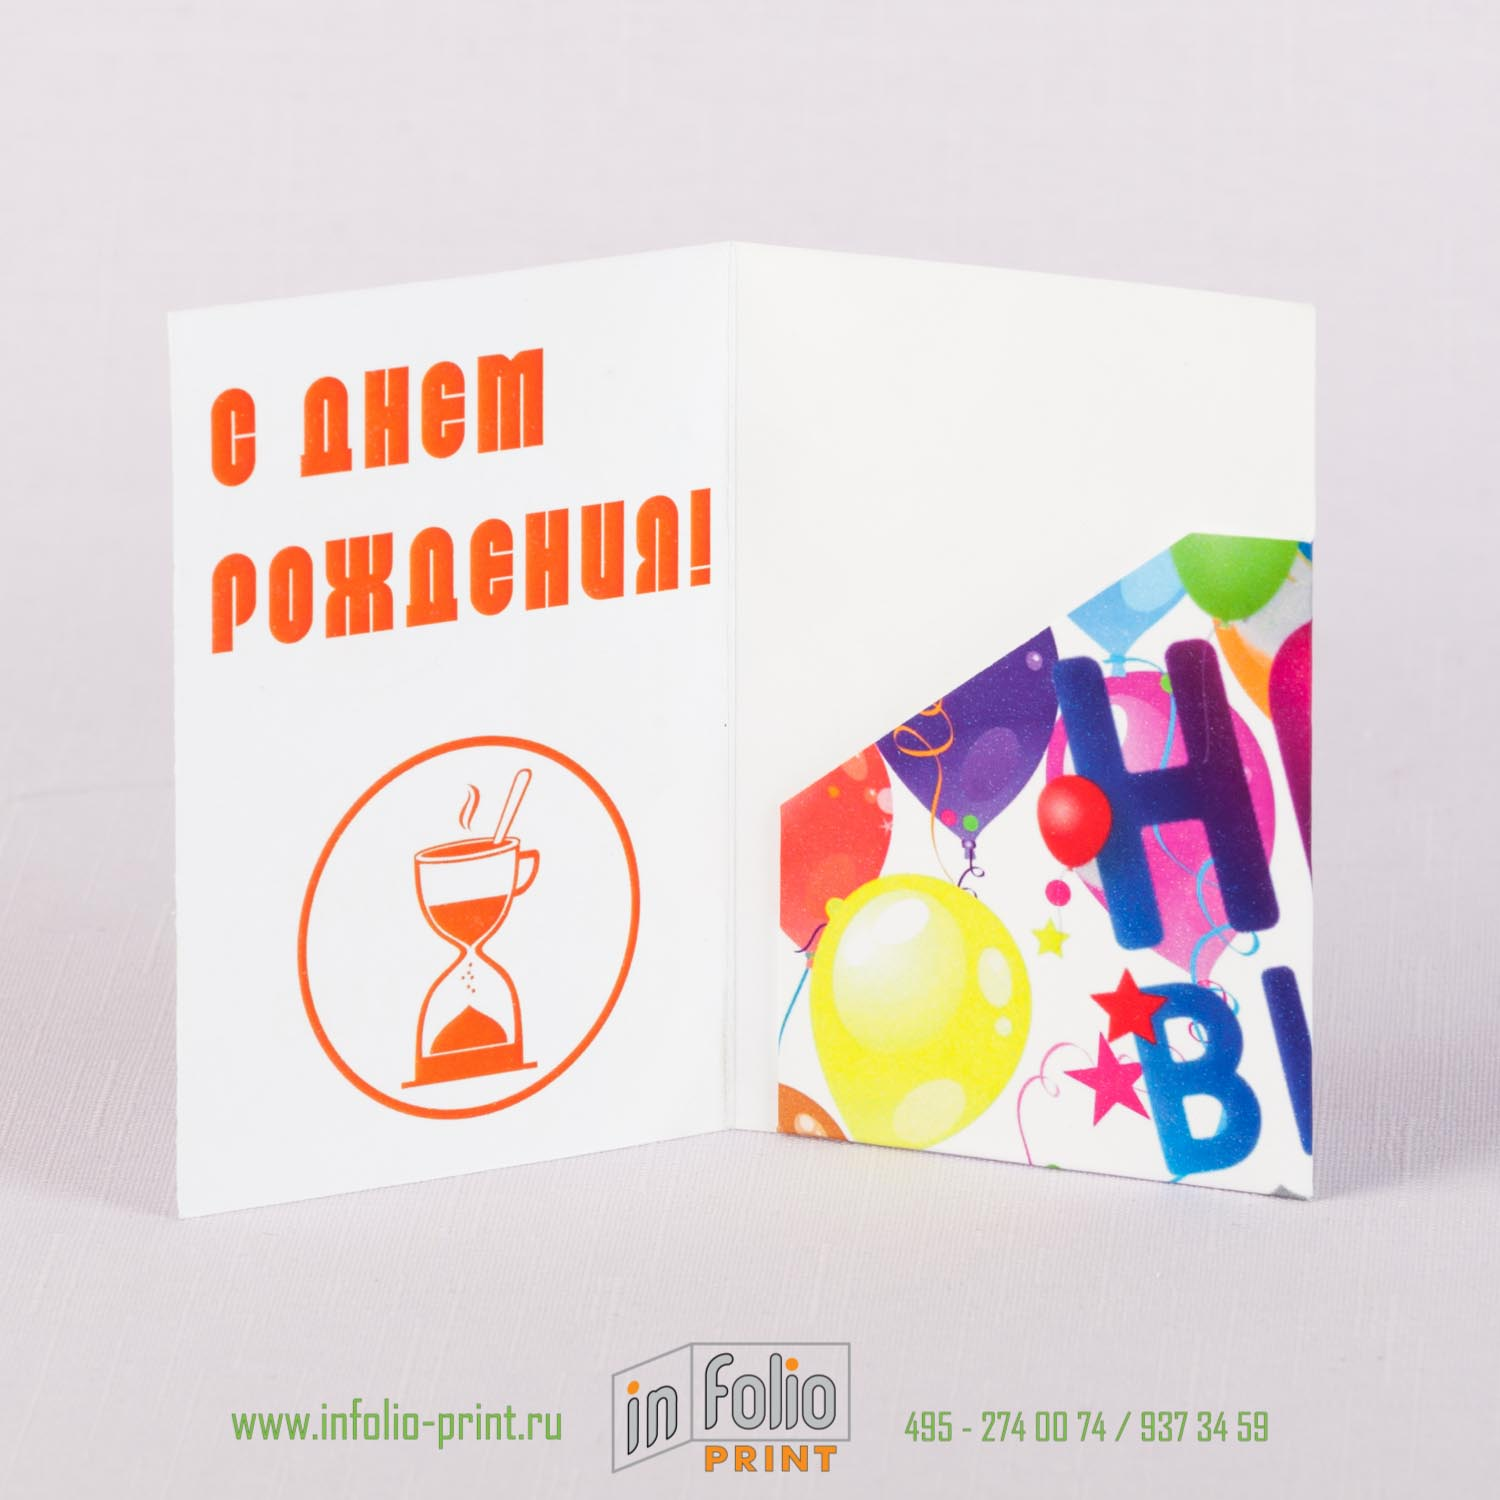 https://www.infolio-print.ru/images/products_gallery_images/K-24_card_s_envelope.JPG